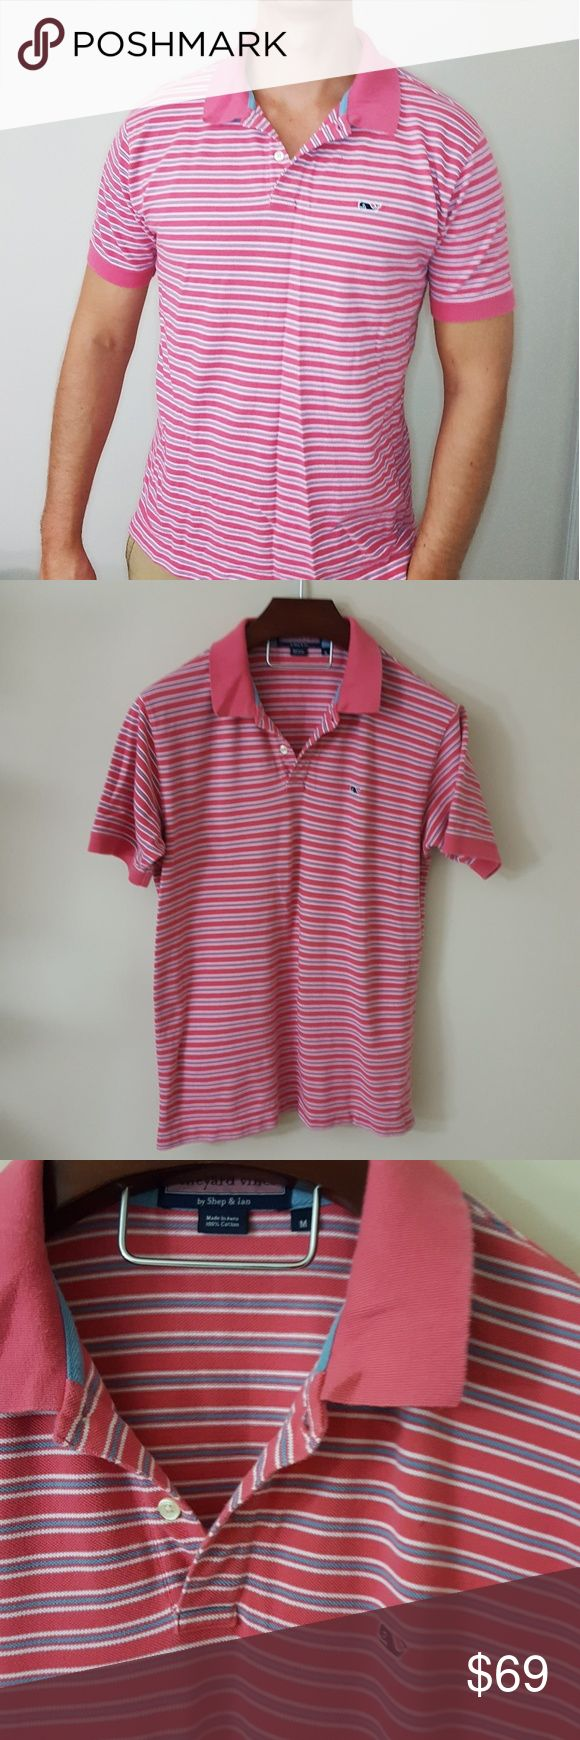 "Vineyard Vines | mens striped polo shirt | M In excellent condition! Mens striped polo shirt, size medium.  My husband is 6'3"" for reference, so it won't be too short on tall guys! Used item: pictures show any signs of wear. Bundle up! Offers always welcome:) Vineyard Vines Shirts Polos"